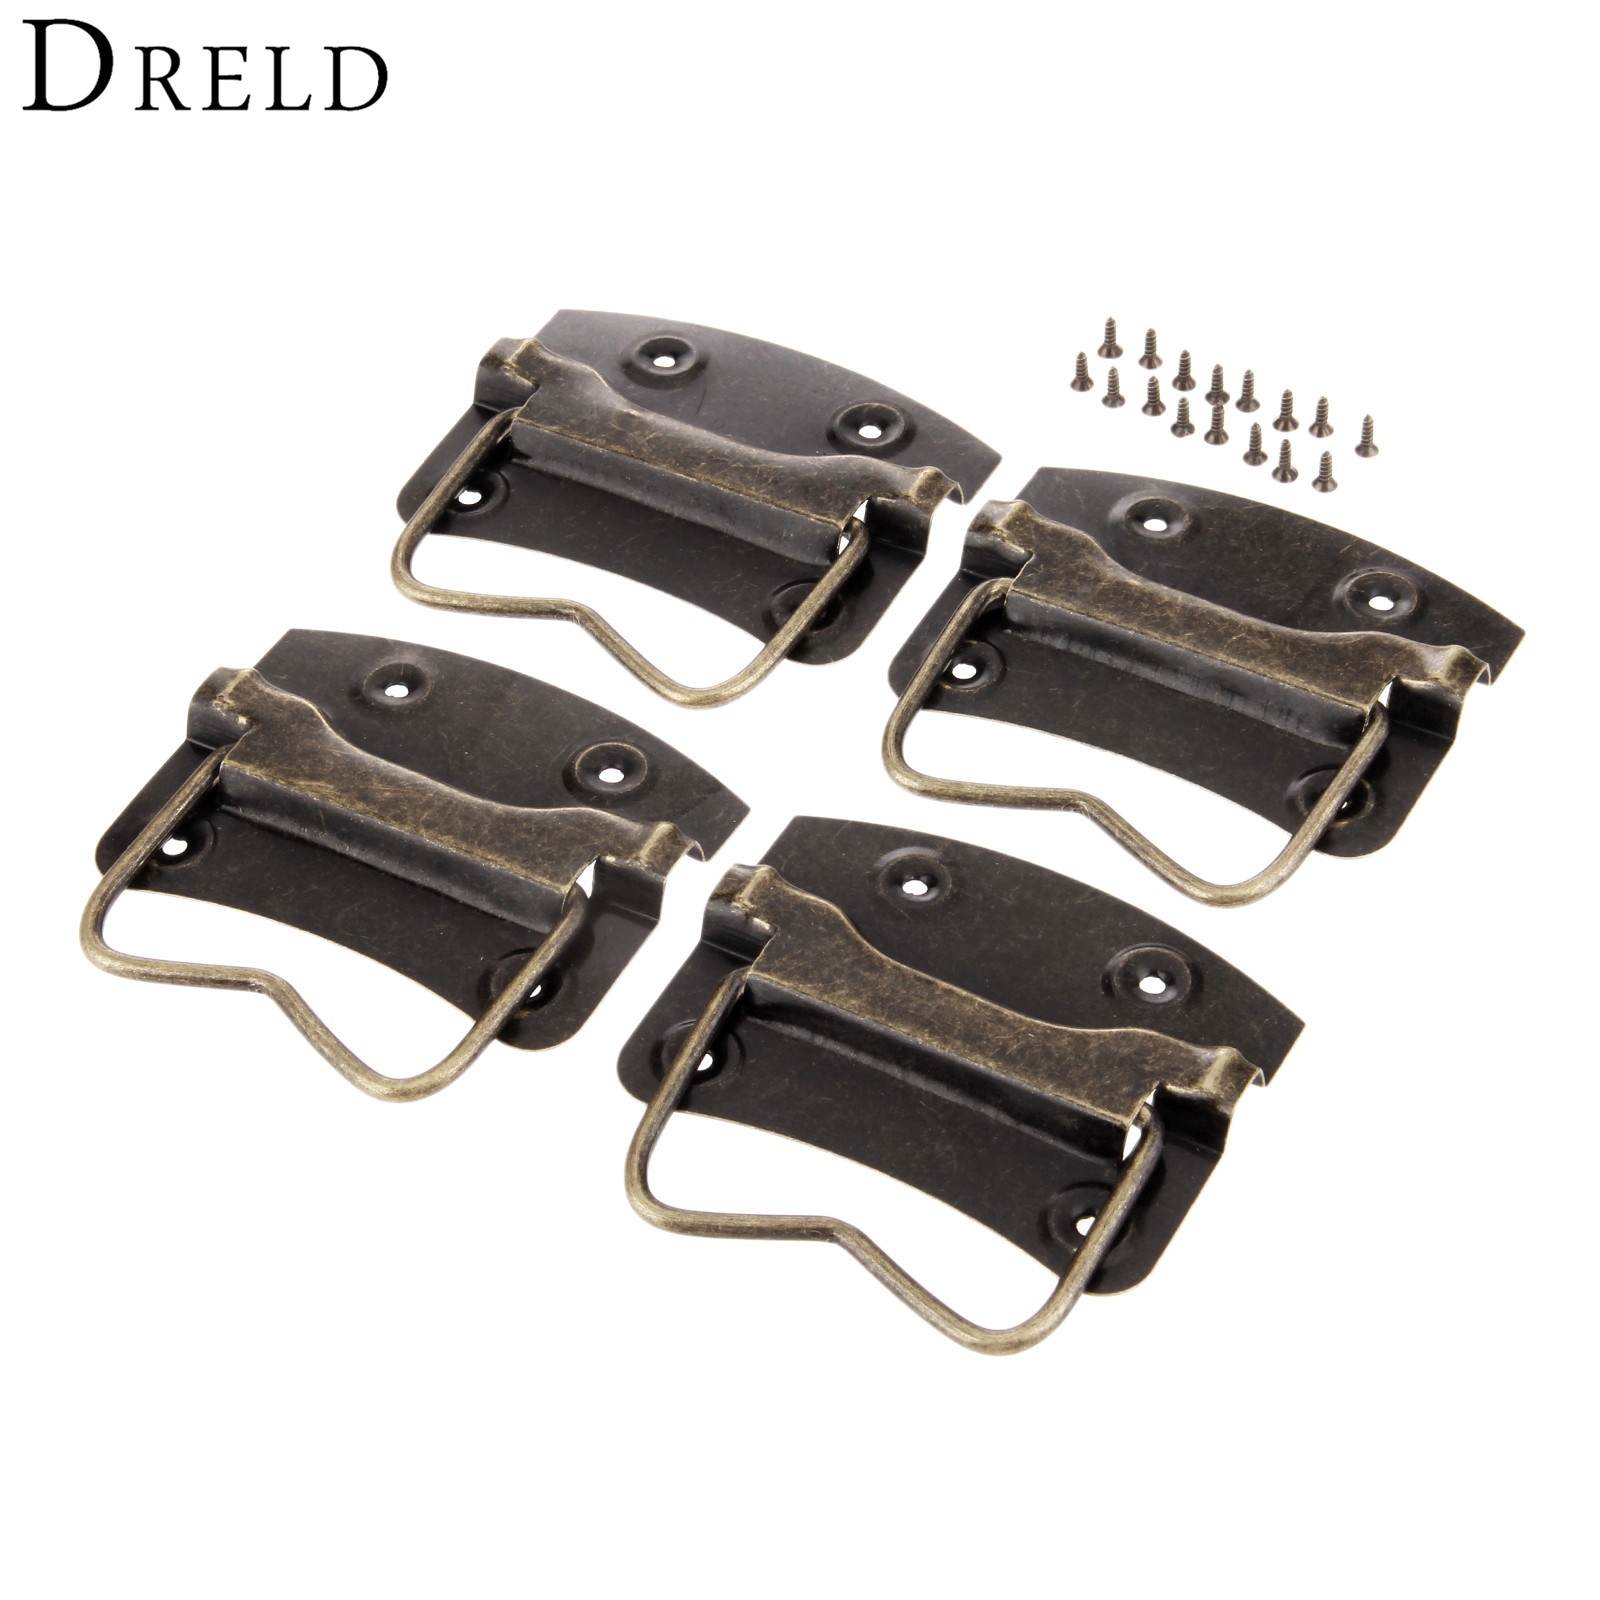 DRELD 4Pc Antique Furniture Handles Wardrobe Door Pulls Dresser Drawer Handles Kitchen Cupboard Handle Cabinet Knobs and Handles l door handle furniture handles black drawer kitchen cabinet door handle grips hole pitch handle pulls